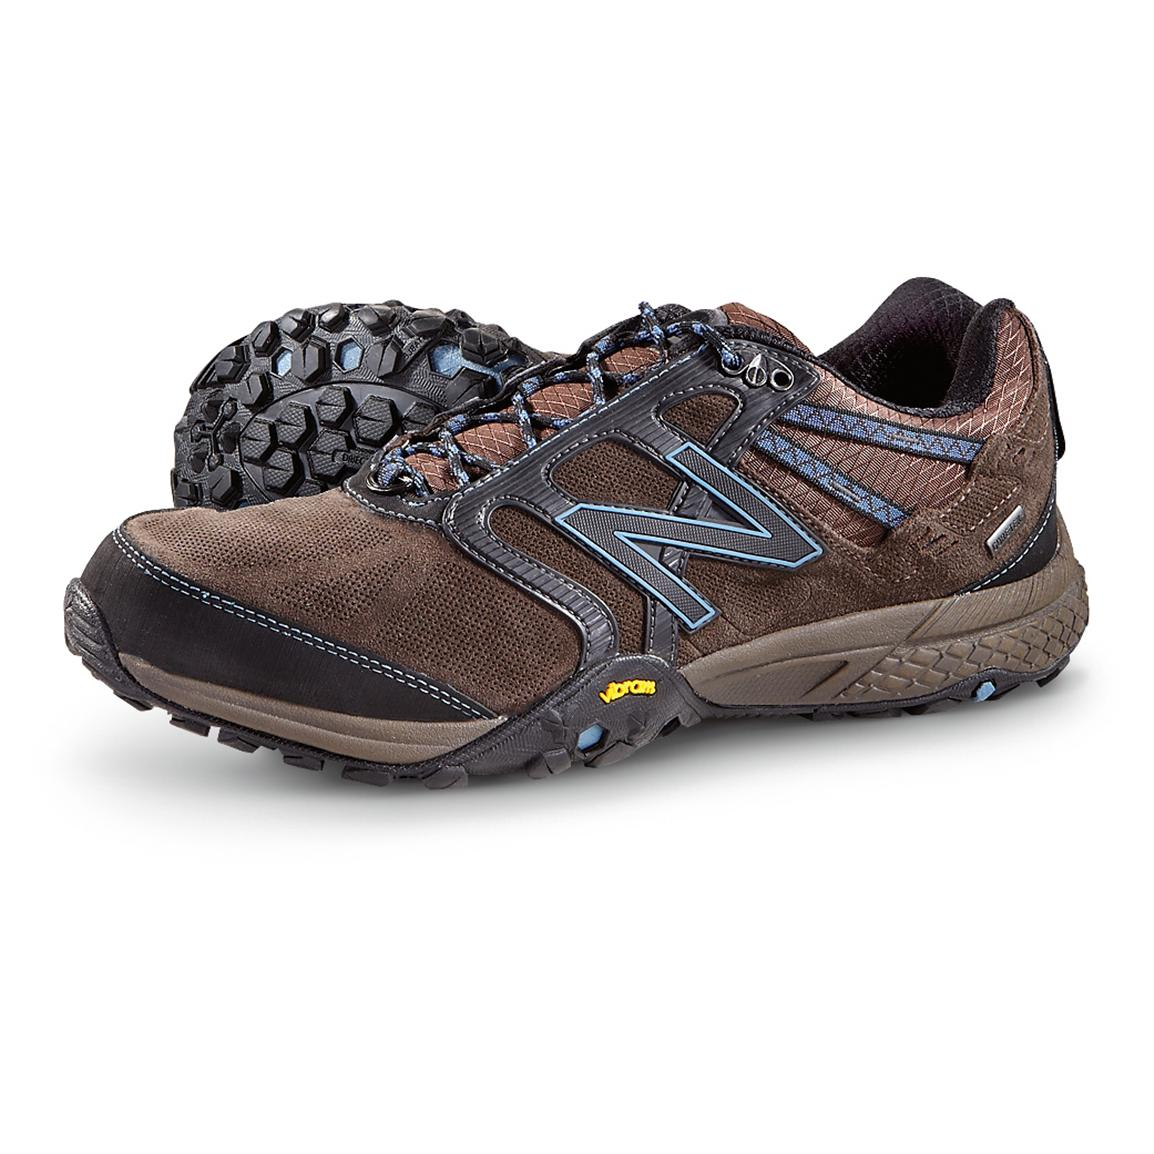 Under Armour Walking Shoes Reviews